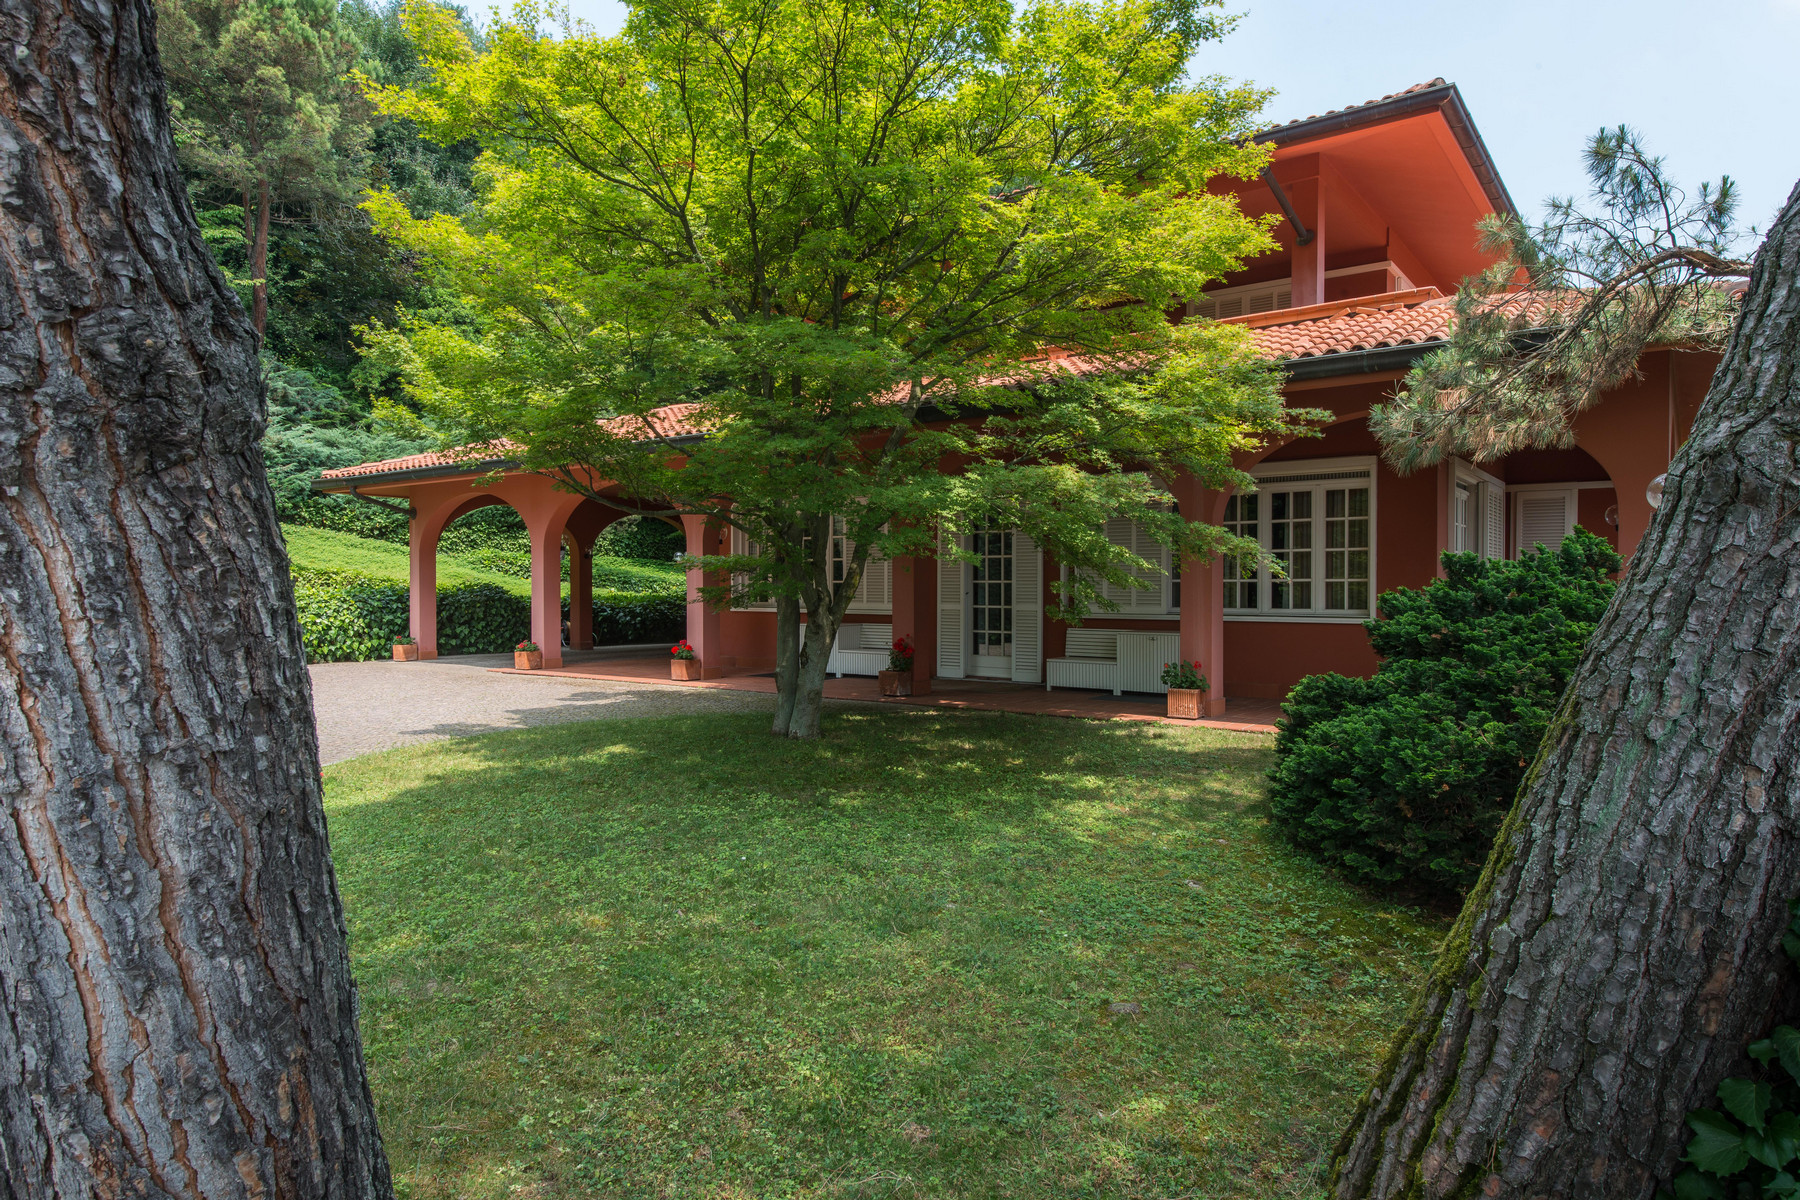 Single Family Home for Sale at Incomparable villa with swimming pool on Turin hills Via Barbara Allason Pecetto Torinese, Turin 10020 Italy